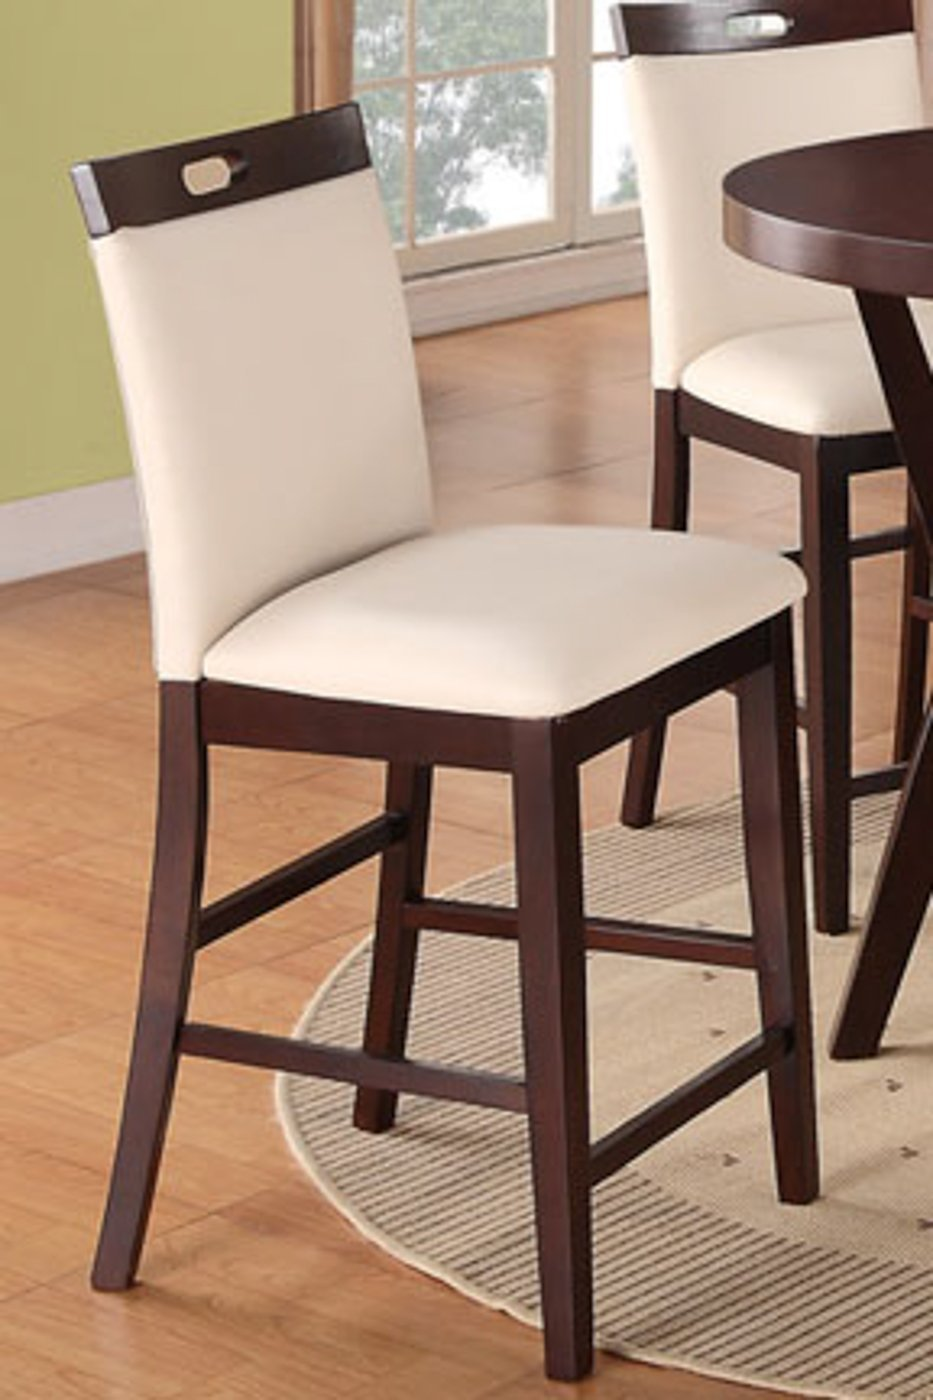 Strange Poundex Modern Counter Height Dining Side Chair Cream Faux Leather Set Of 2 Ibusinesslaw Wood Chair Design Ideas Ibusinesslaworg